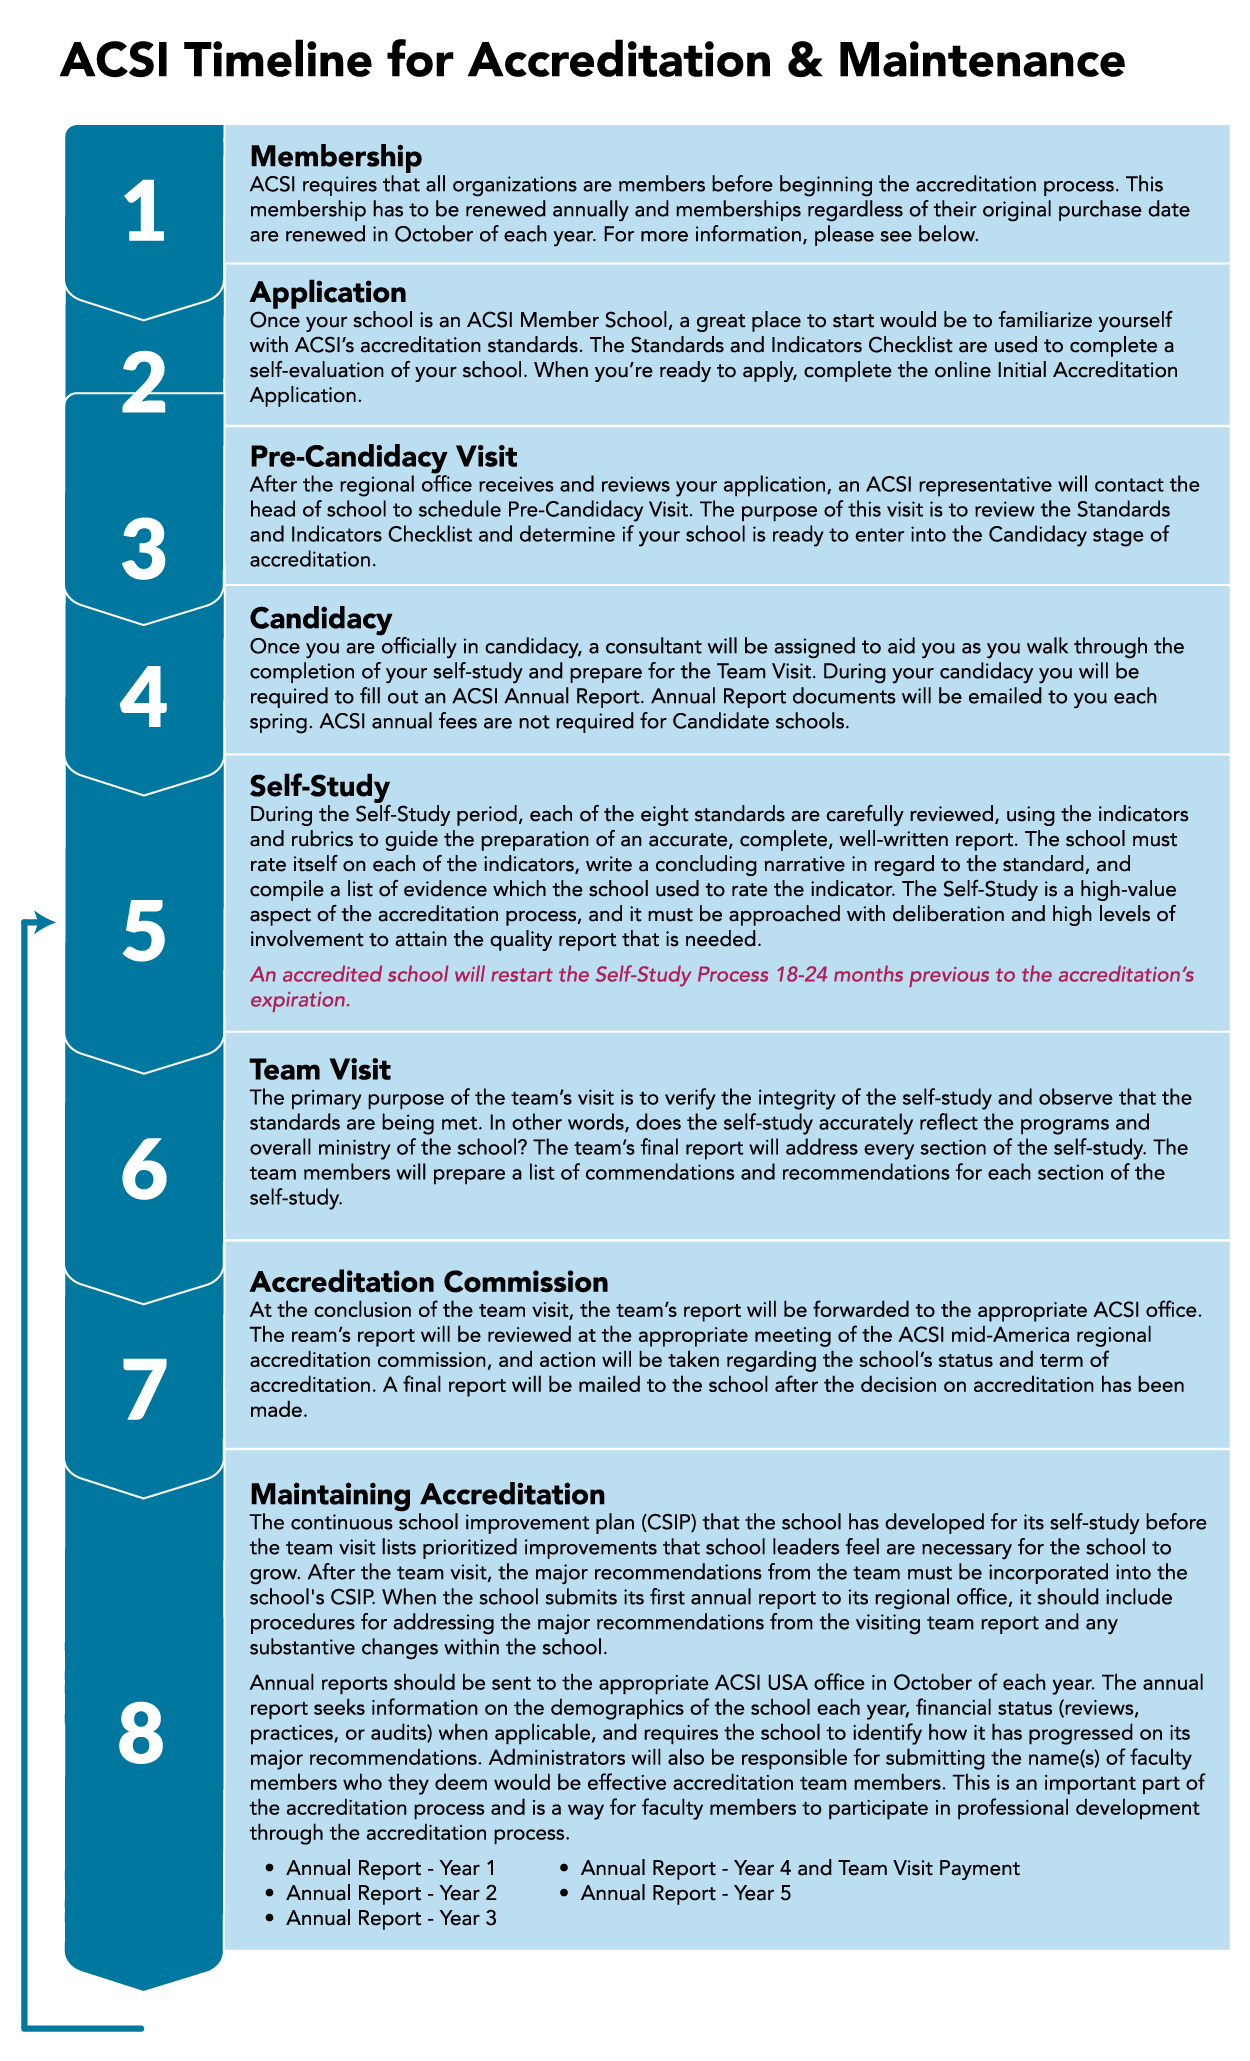 blue ACSI timeline graphic for accreditation